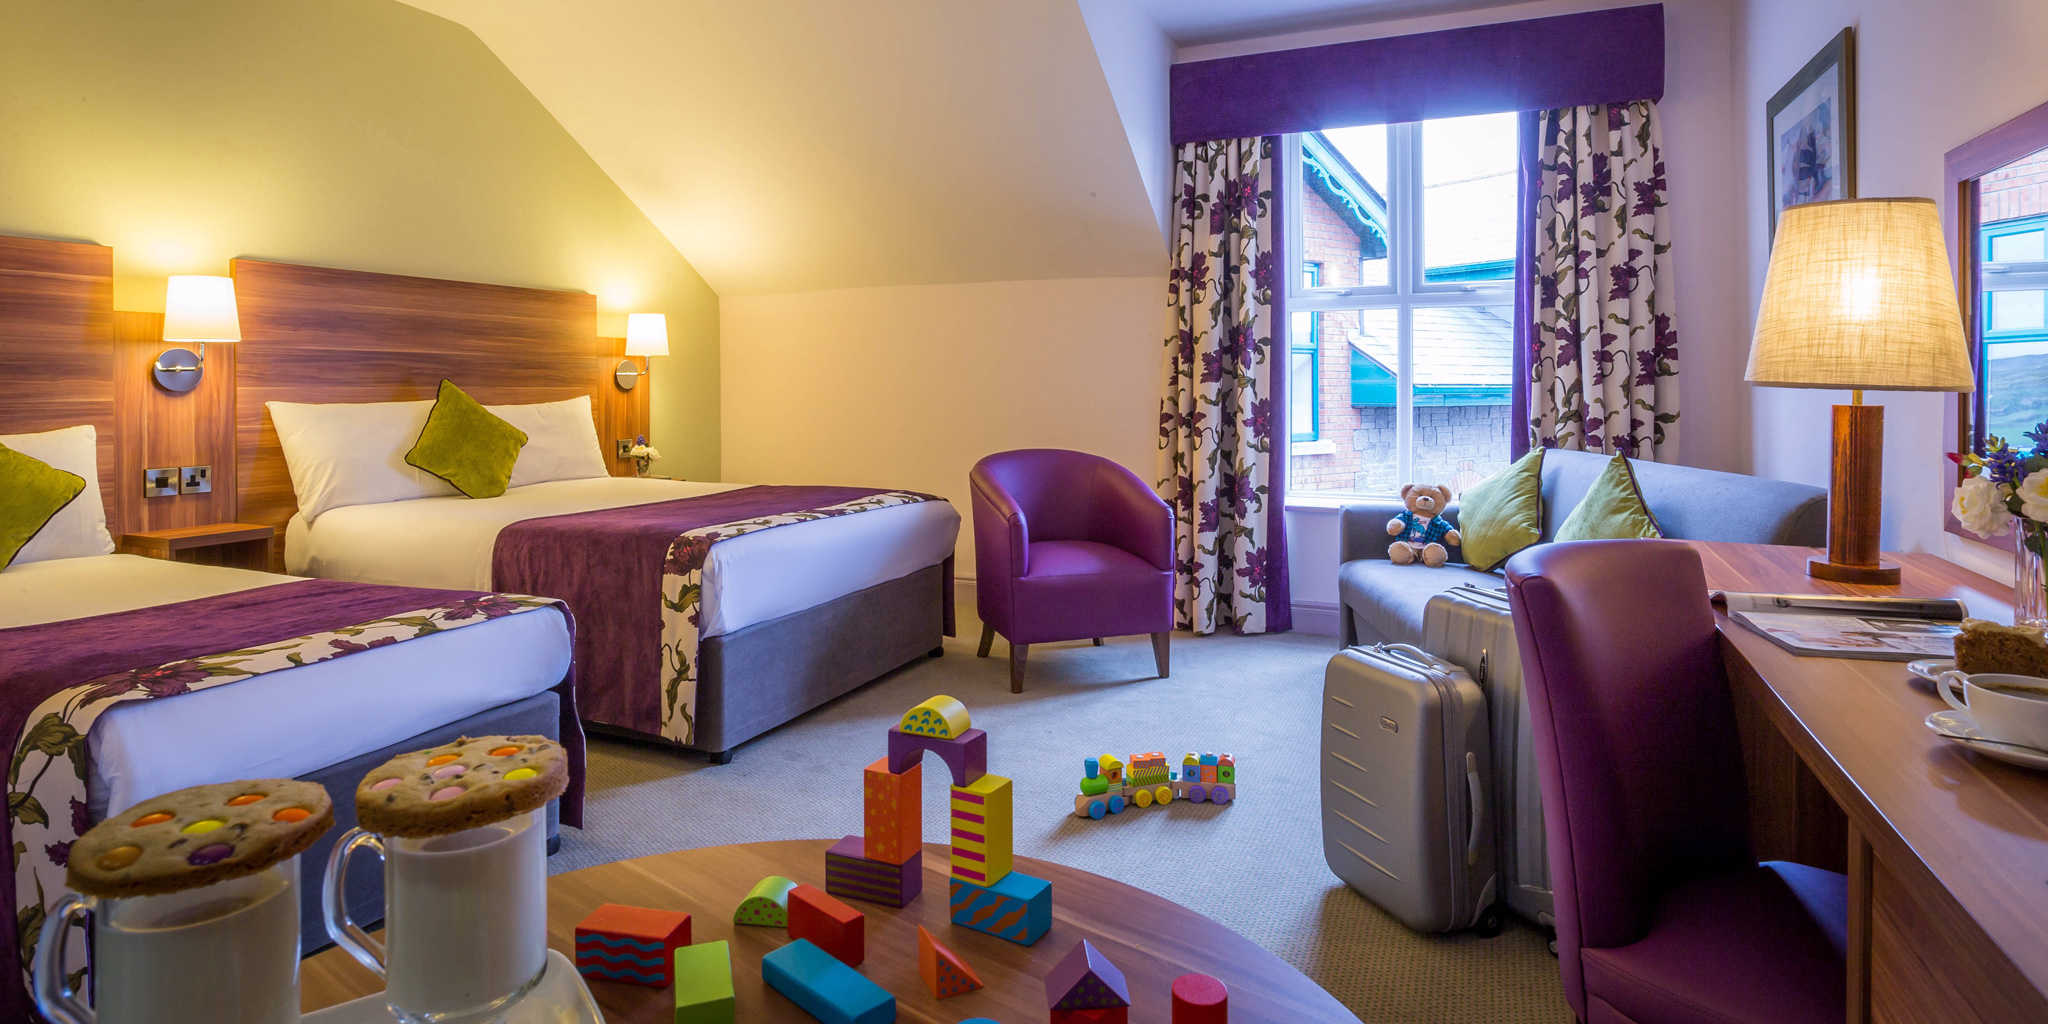 Superb 3 star accommodation galway maldron hotel galway hotel family room galway solutioingenieria Choice Image